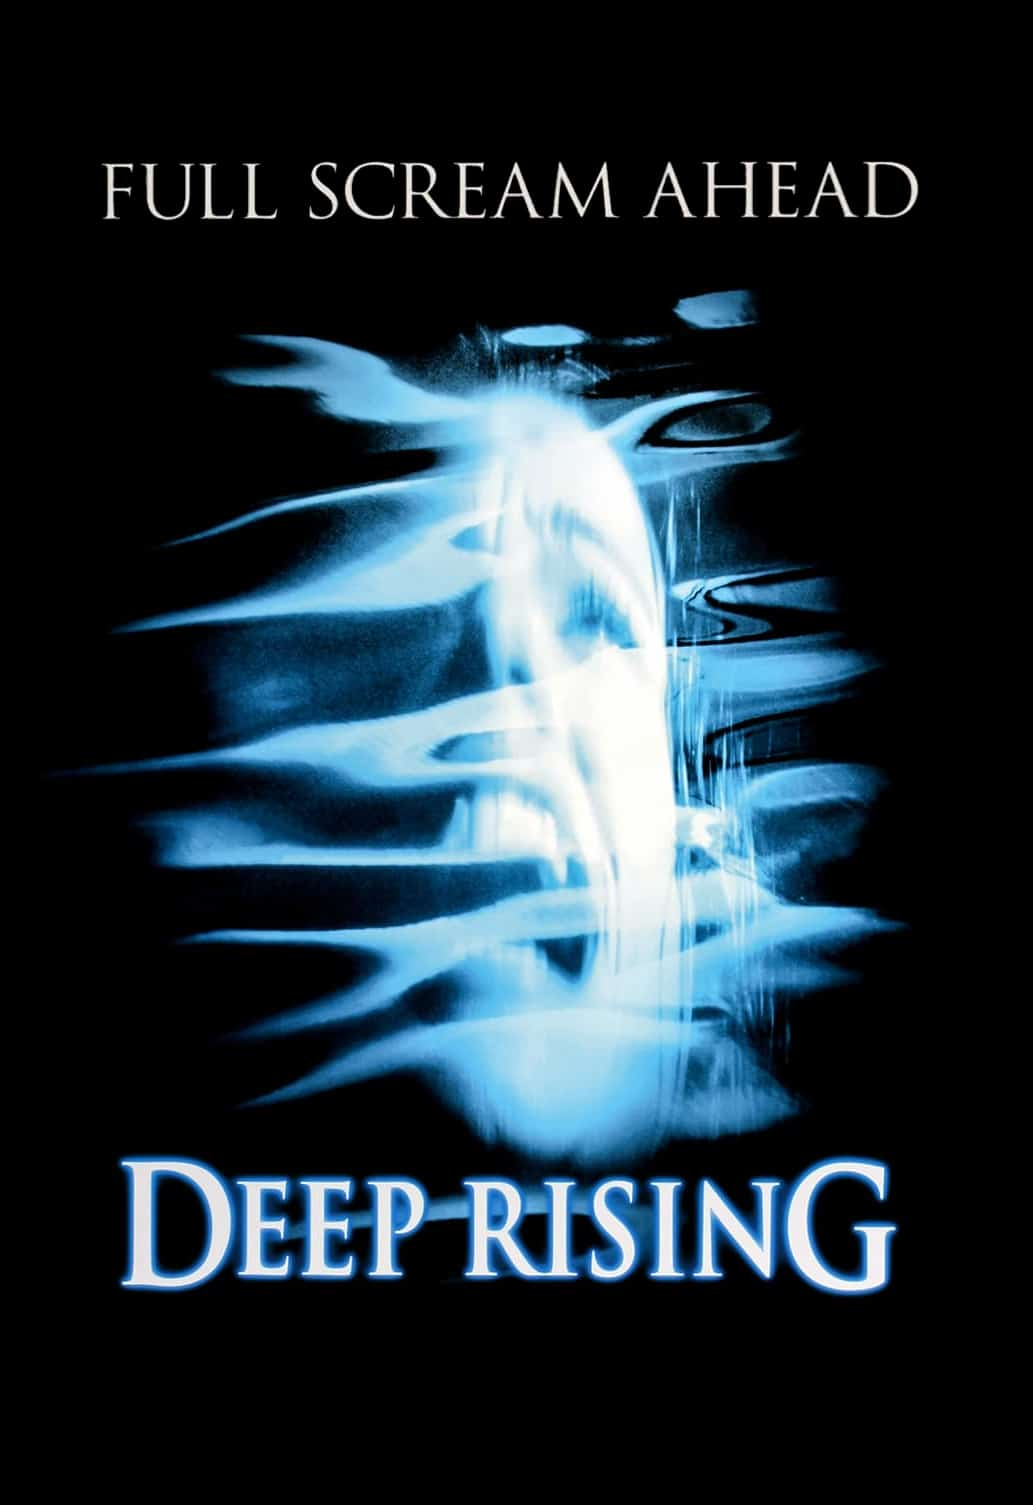 [Freaks of Nature] DEEP RISING Deserved Better as It Remains the Most Entertaining Aquatic Horror Movie Ever